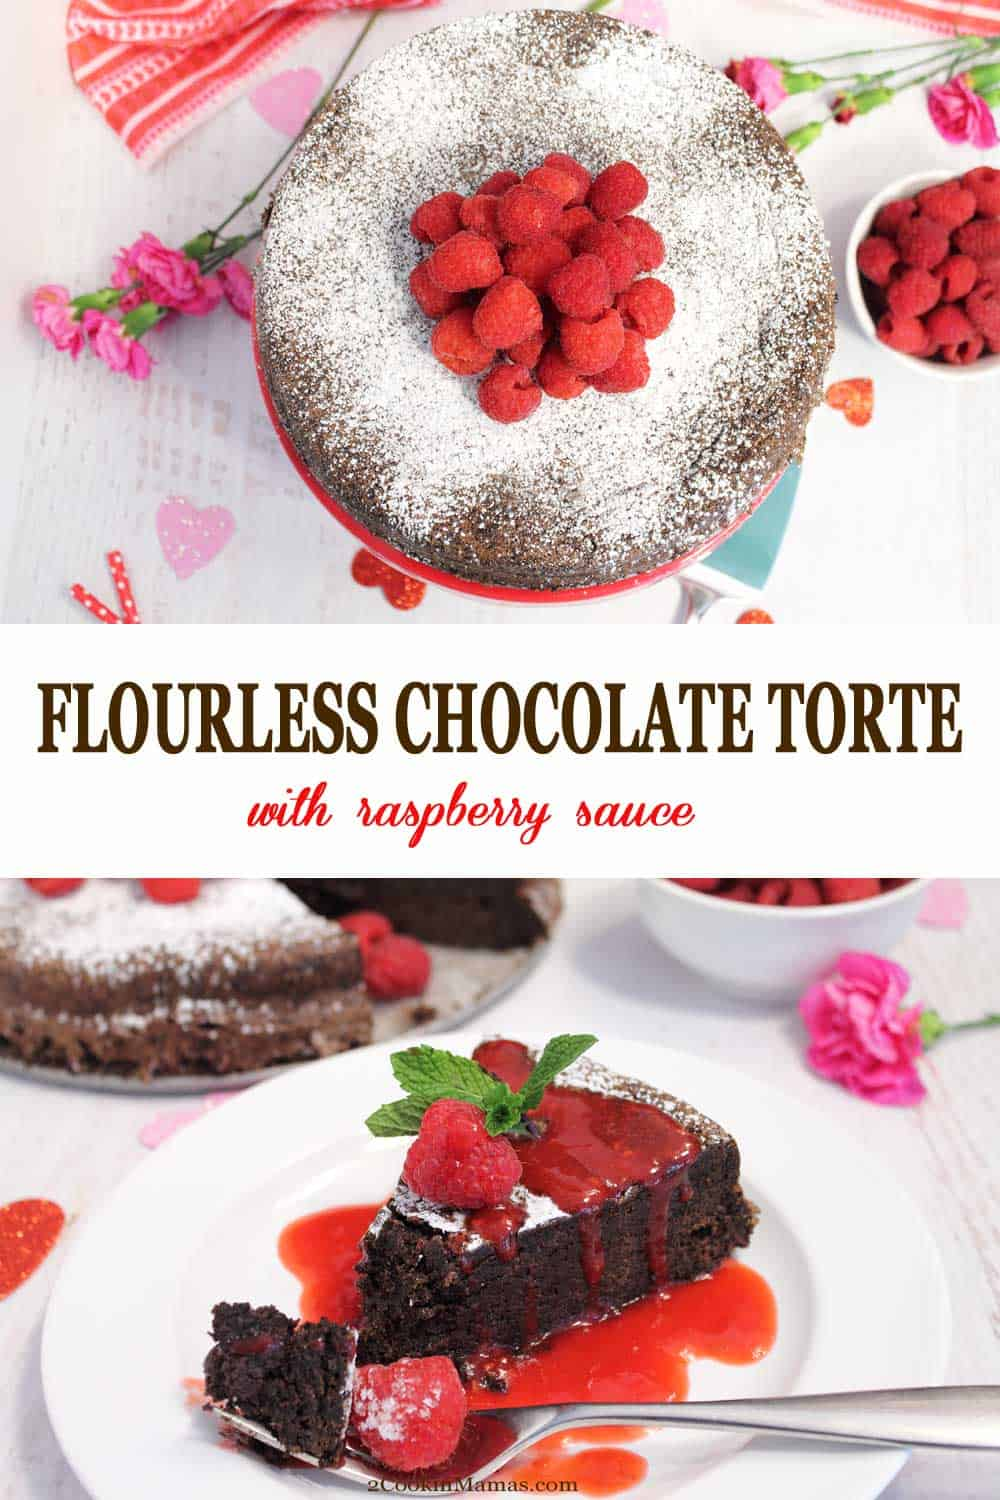 Flourless Chocolate Torte with Raspberry Sauce | 2 Cookin Mamas This Flourless Chocolate Torte is a rich, dense, velvety smooth cake that was made for chocolate lovers. It's easy to make, requires no flour, so it is naturally gluten-free, and tastes like fudge in cake form. Serve topped with raspberries or with a side of raspberry sauce. This torte makes the perfect Valentine's Day or special occasion dessert. #dessert #chocolate #chocolatetorte #ValentinesDay #easy #glutenfree #recipe #chocolatecake